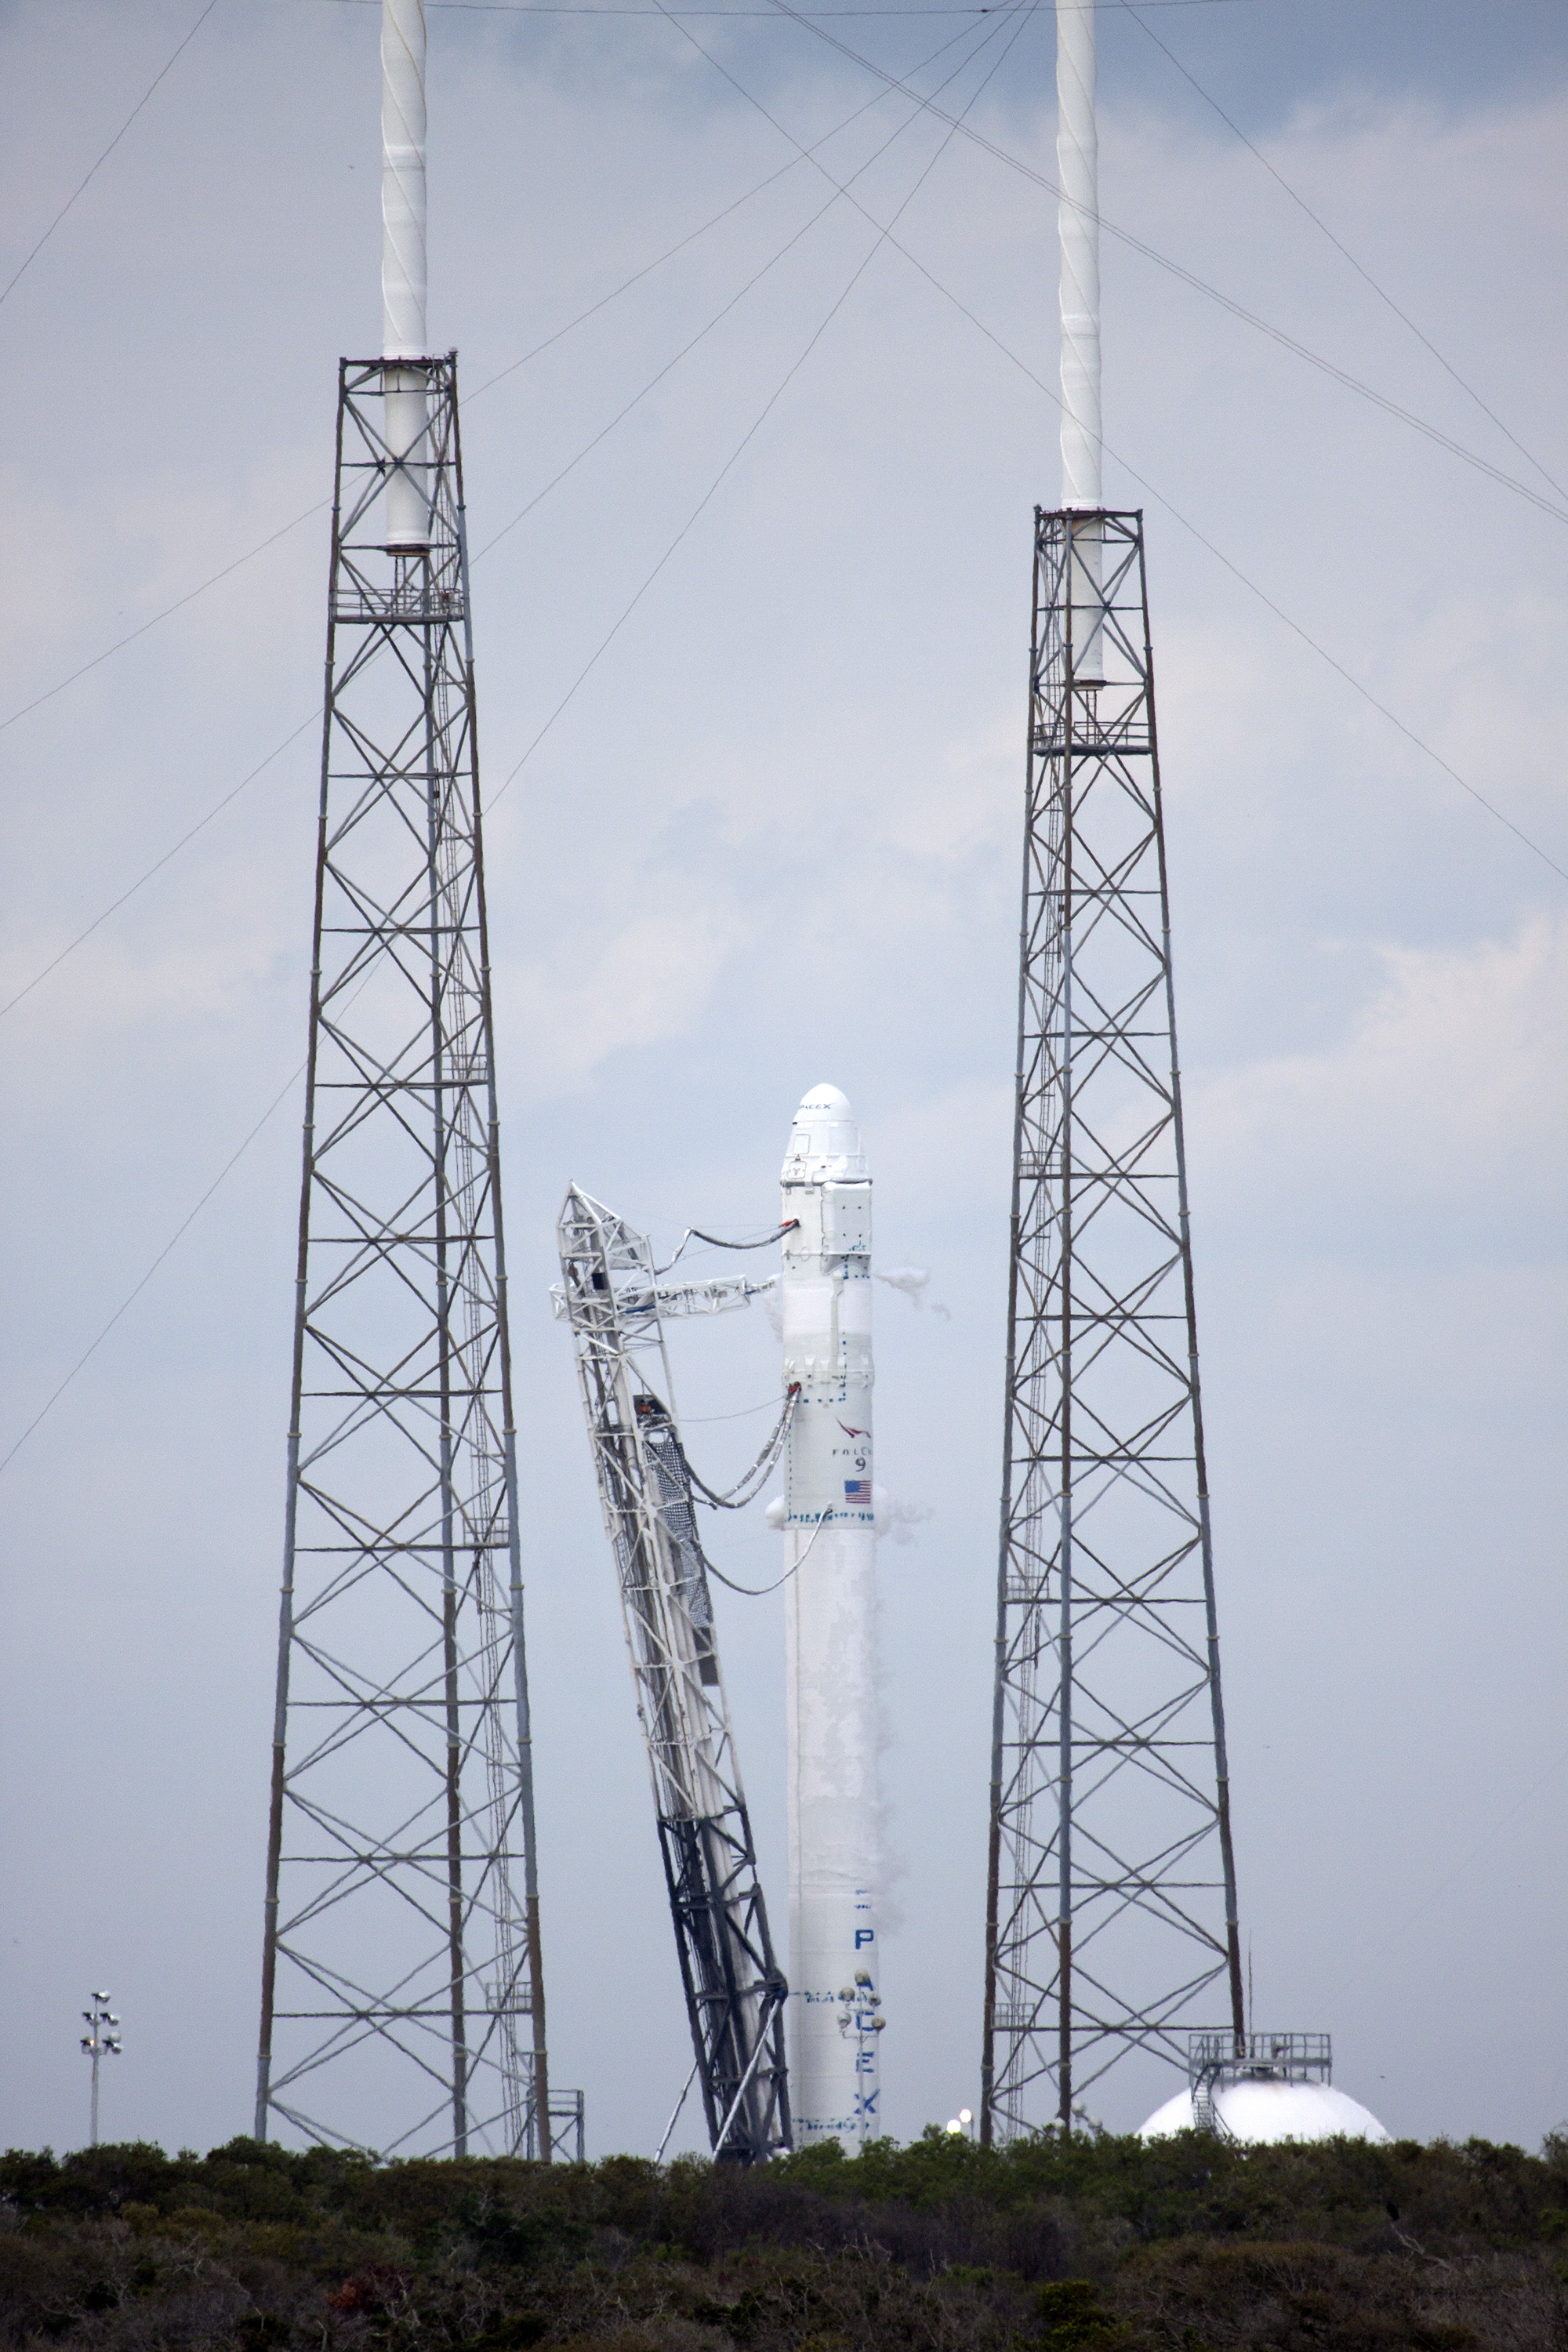 SpaceX Falcon 9 Rocket Standing on Launch Complex 40